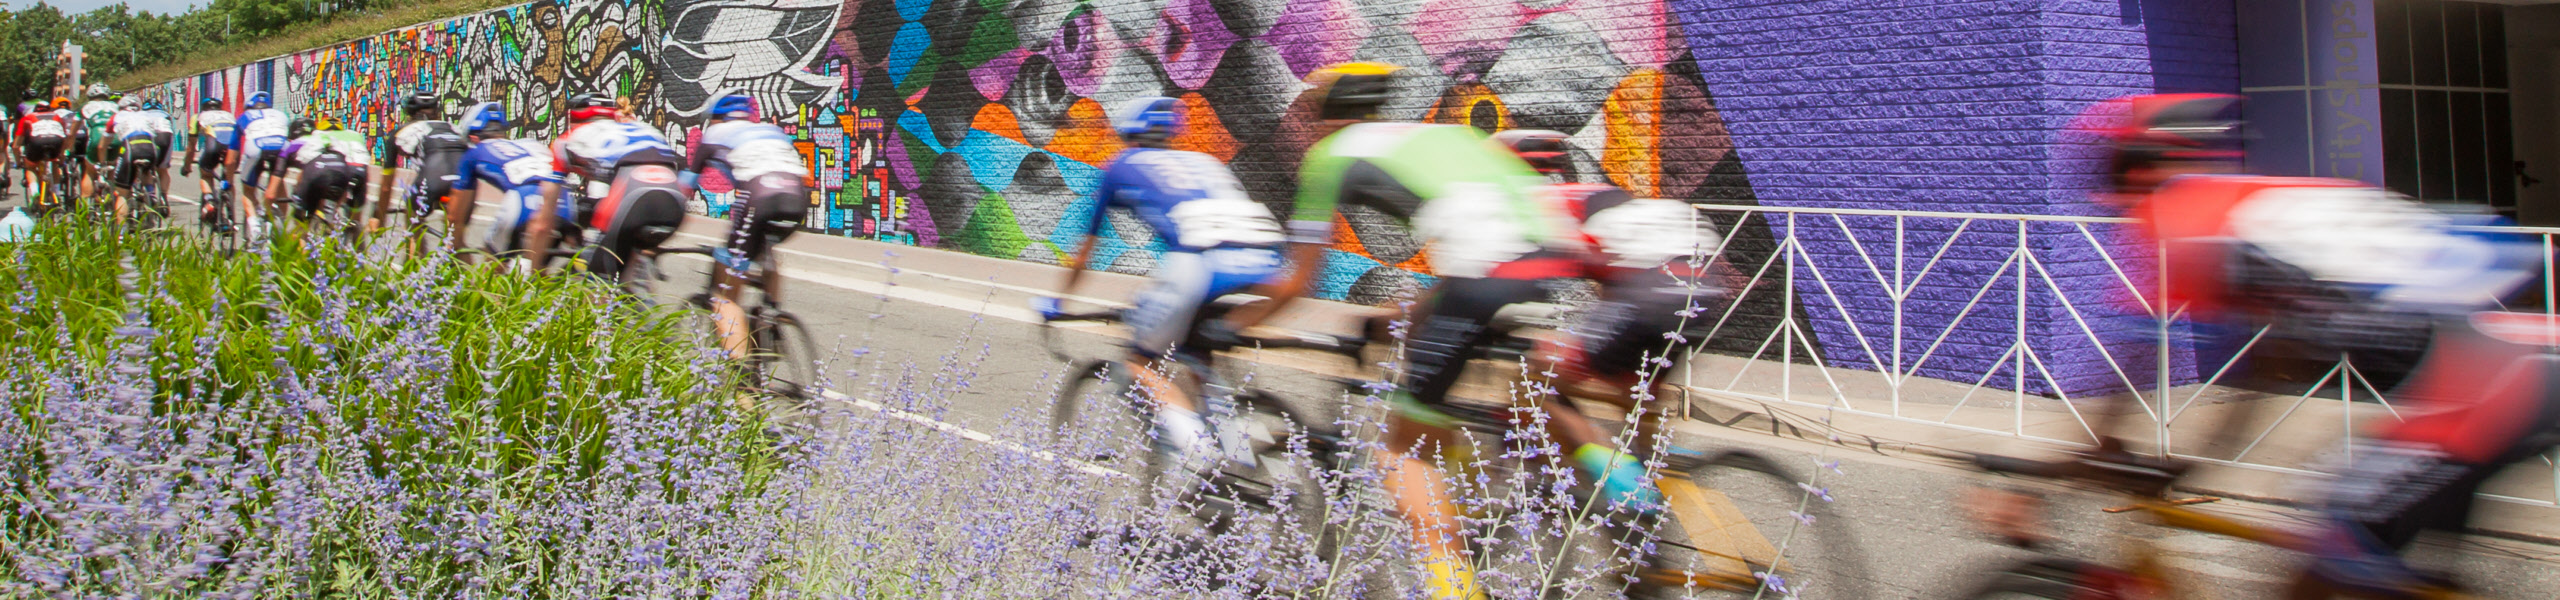 bike racing pack passes purple mural wall